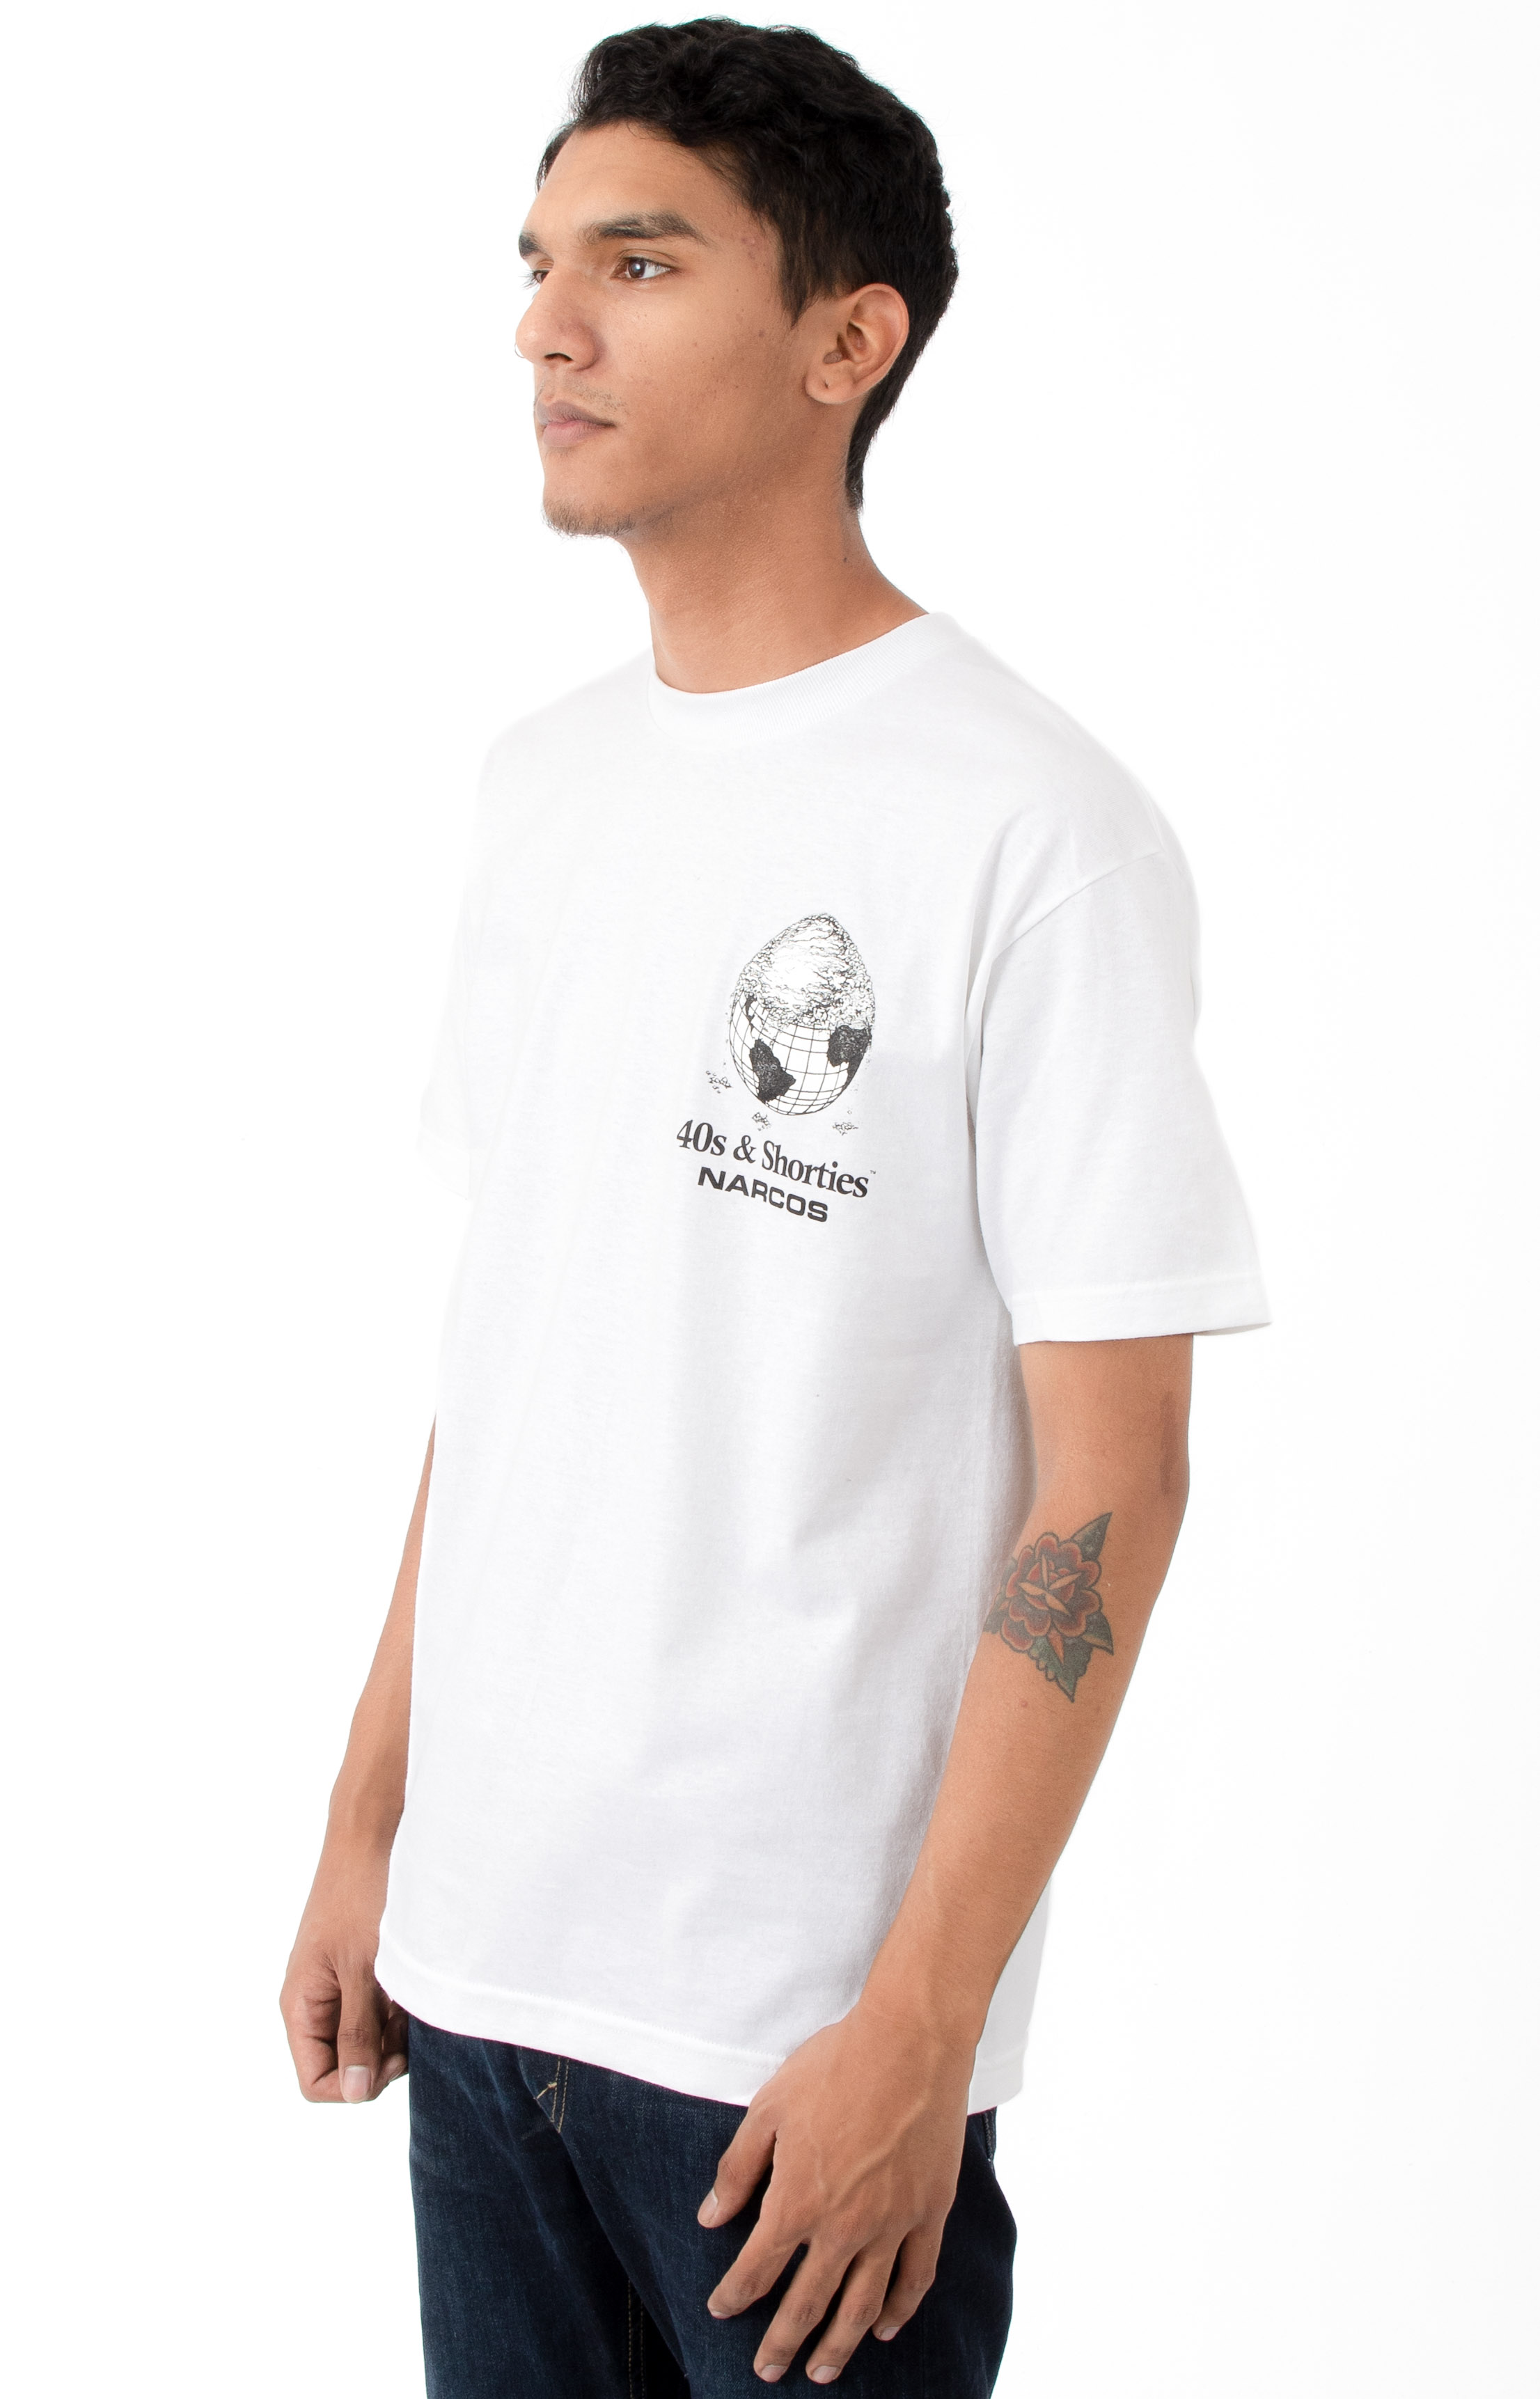 Cover The Earth T-Shirt - White 3